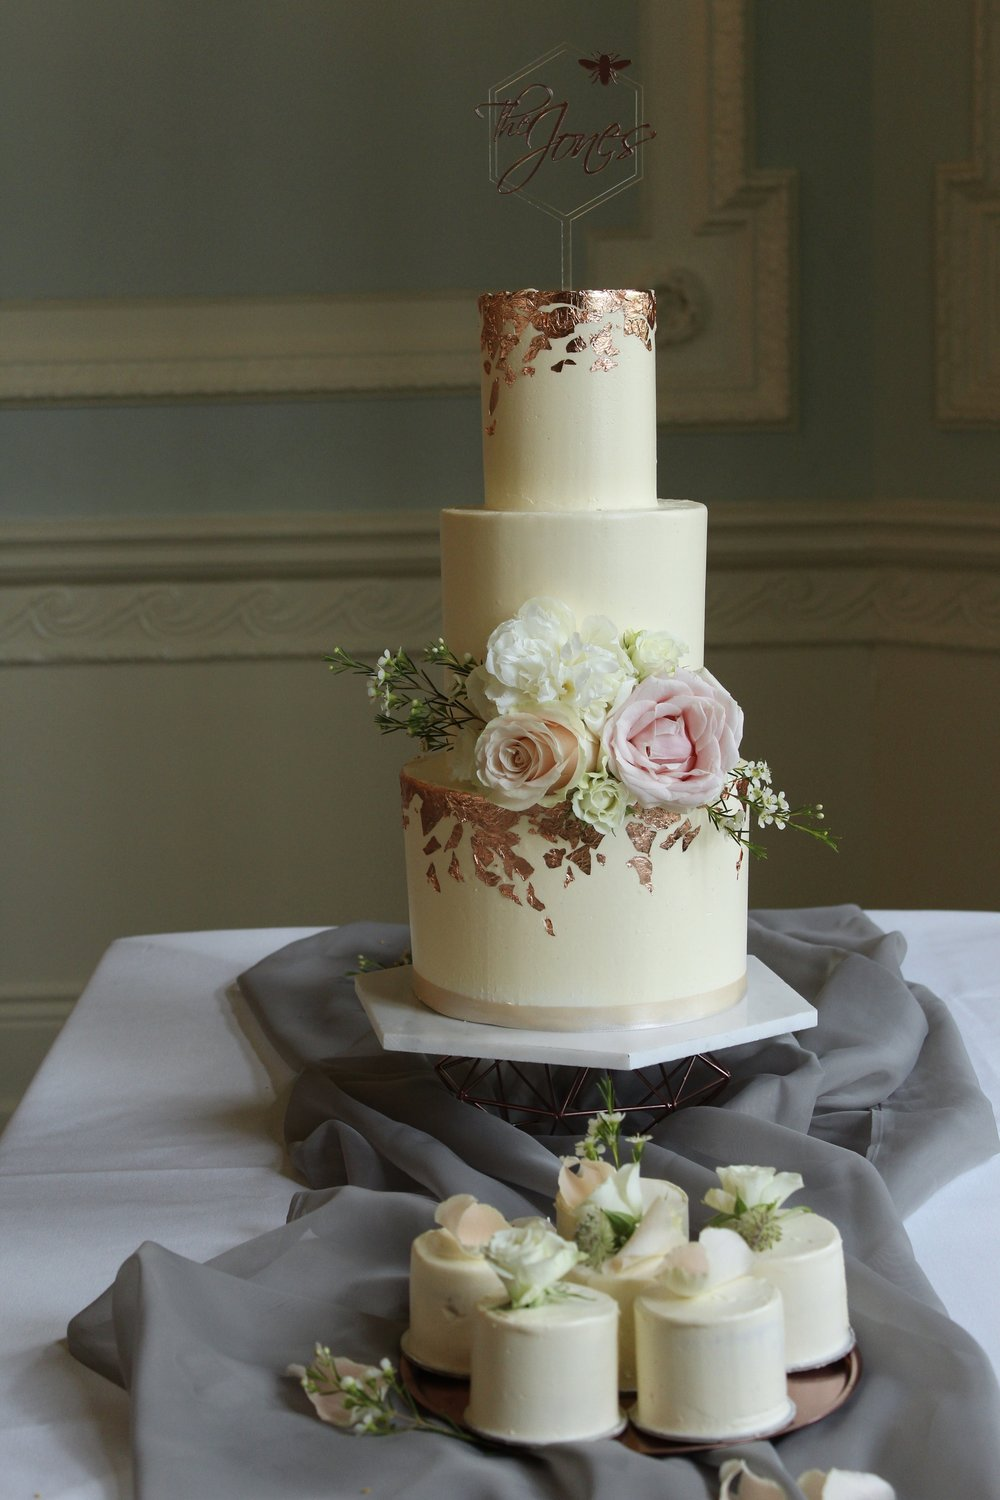 Modern, minimal buttercream wedding cake with copper accents by Yolk www.cakesbyyolk.com